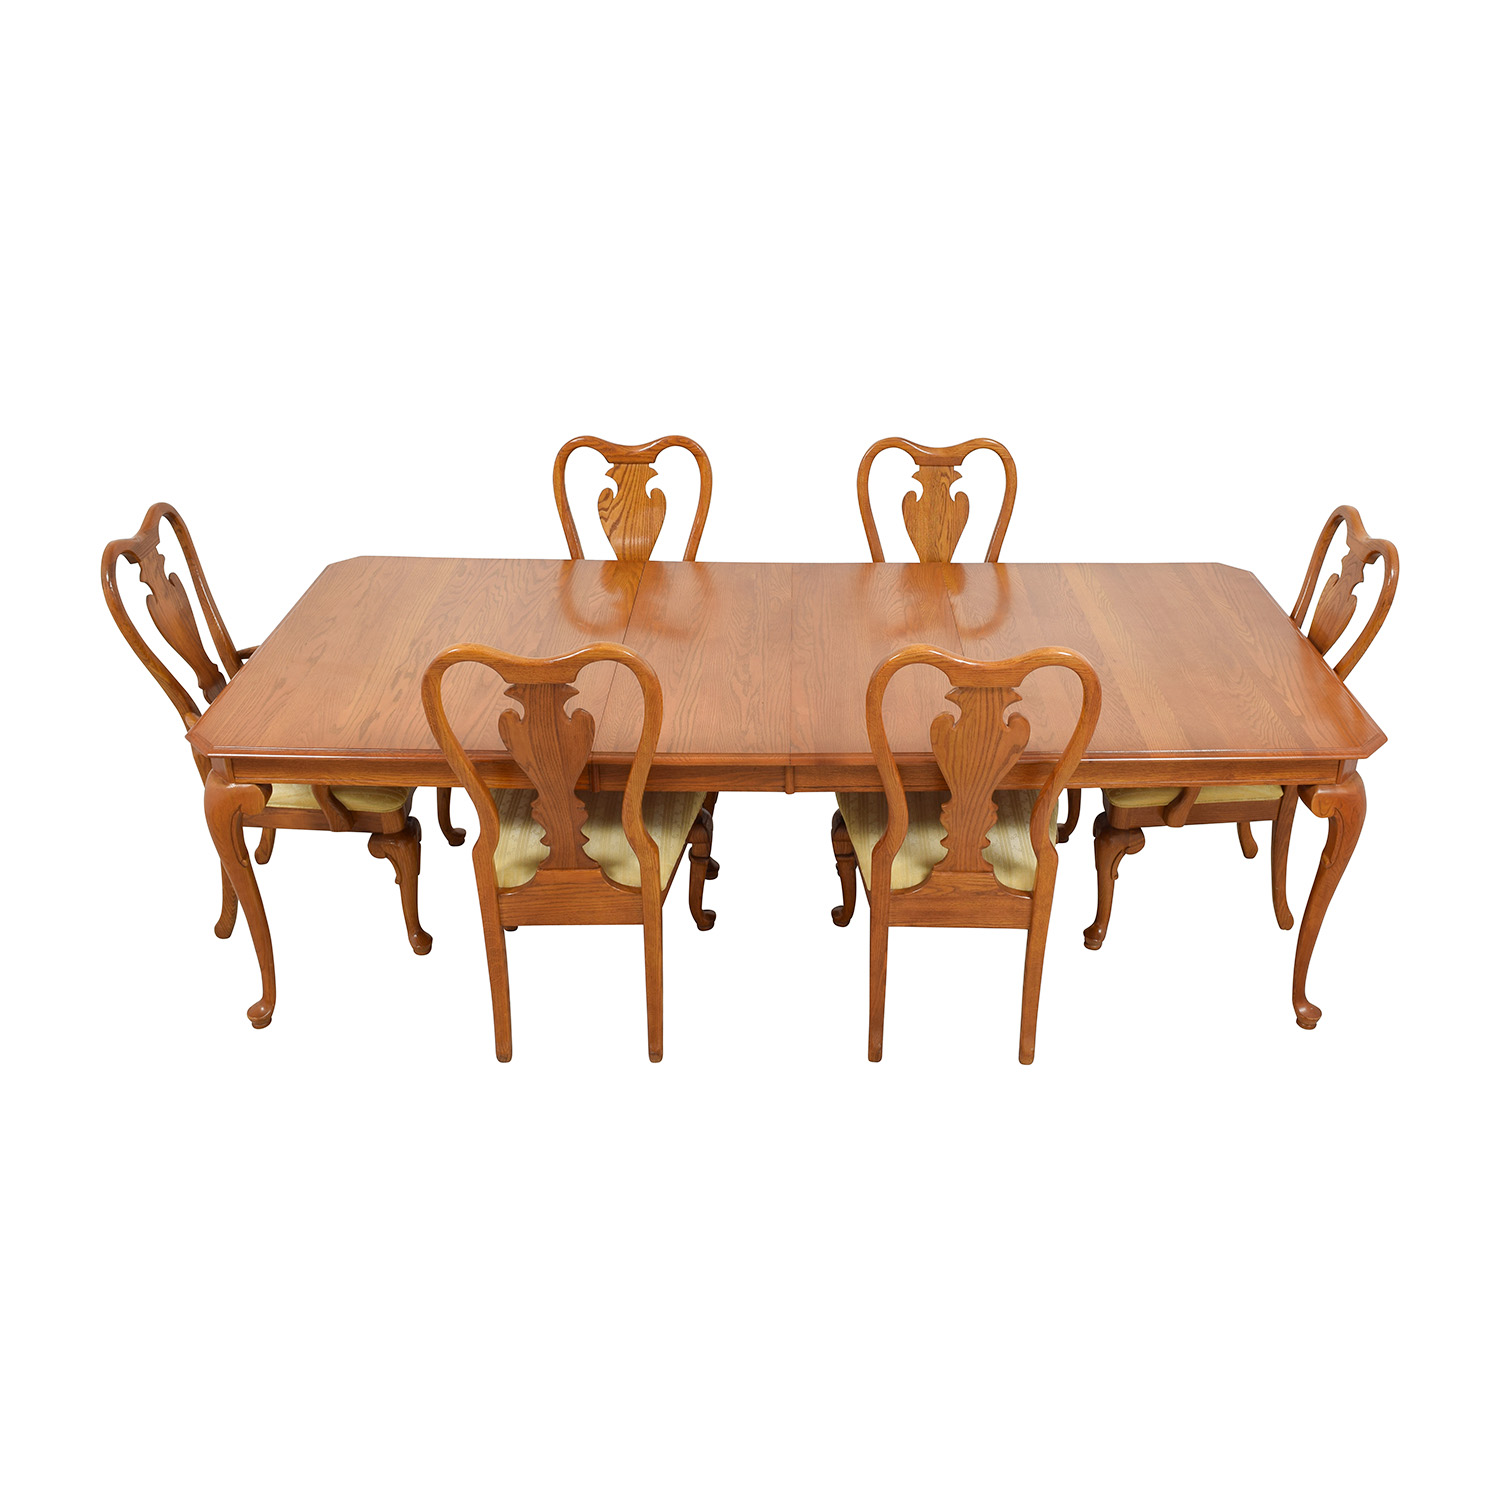 Classic Six-Piece Wooden Dining Set on sale